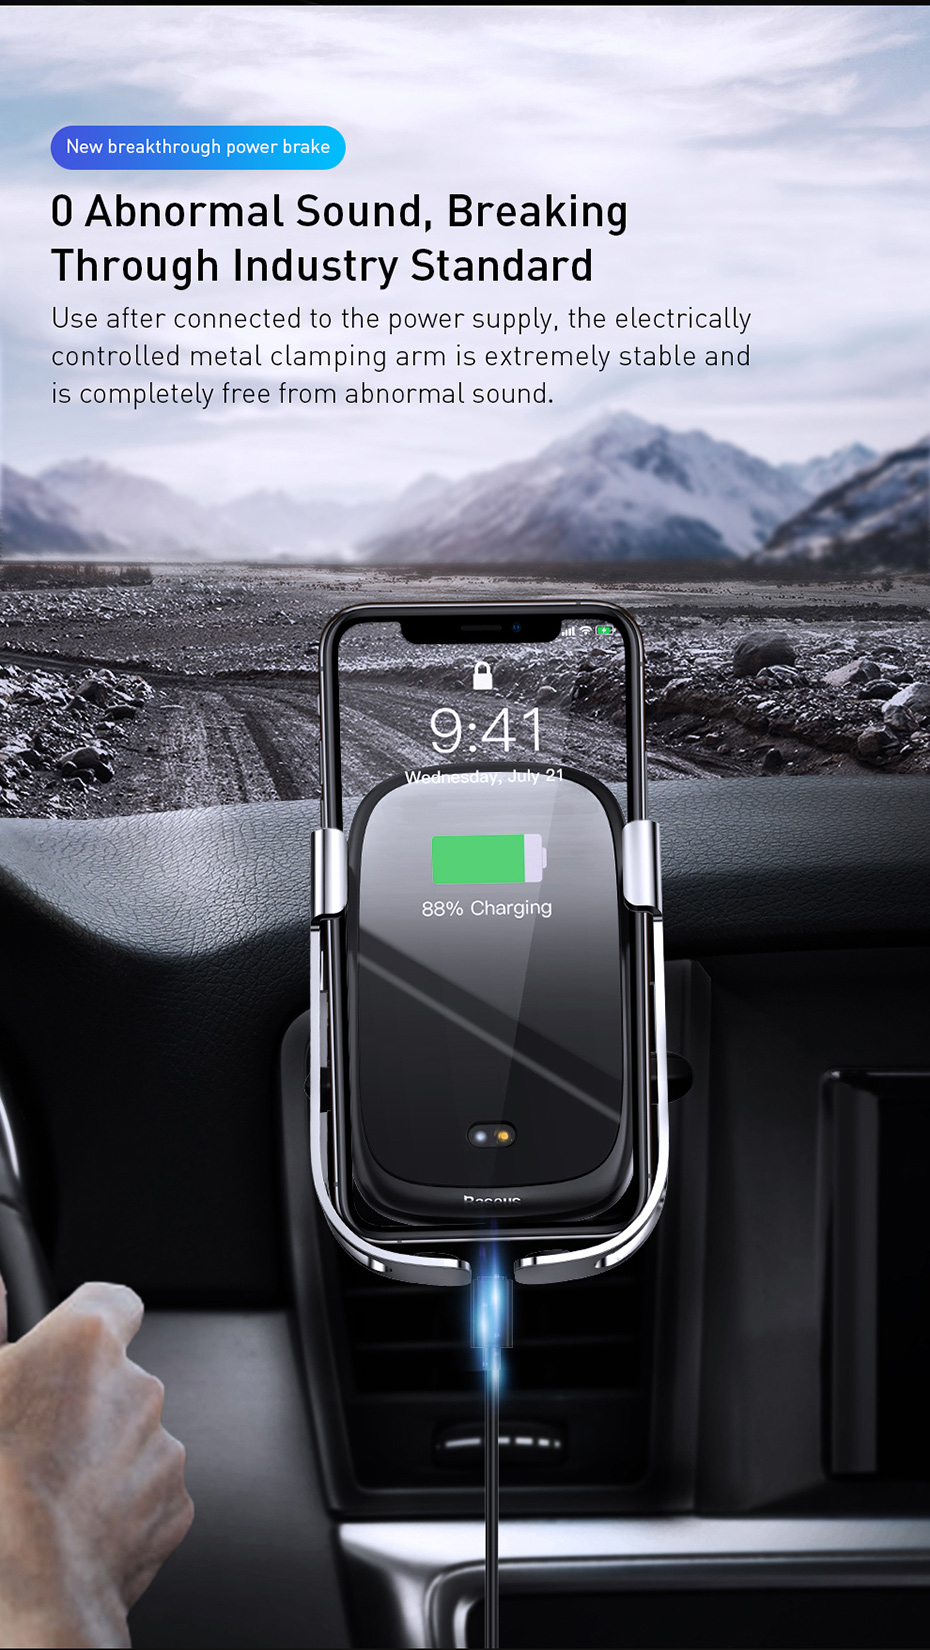 Baseus 10W Auto Induction Qi Fast Charging Wireless Car Charger Phone Holder Air Outlet Bracket For iPhone X XS HUAWEI P30 Oneplus 7 XIAOMI MI 9 S10 S10+